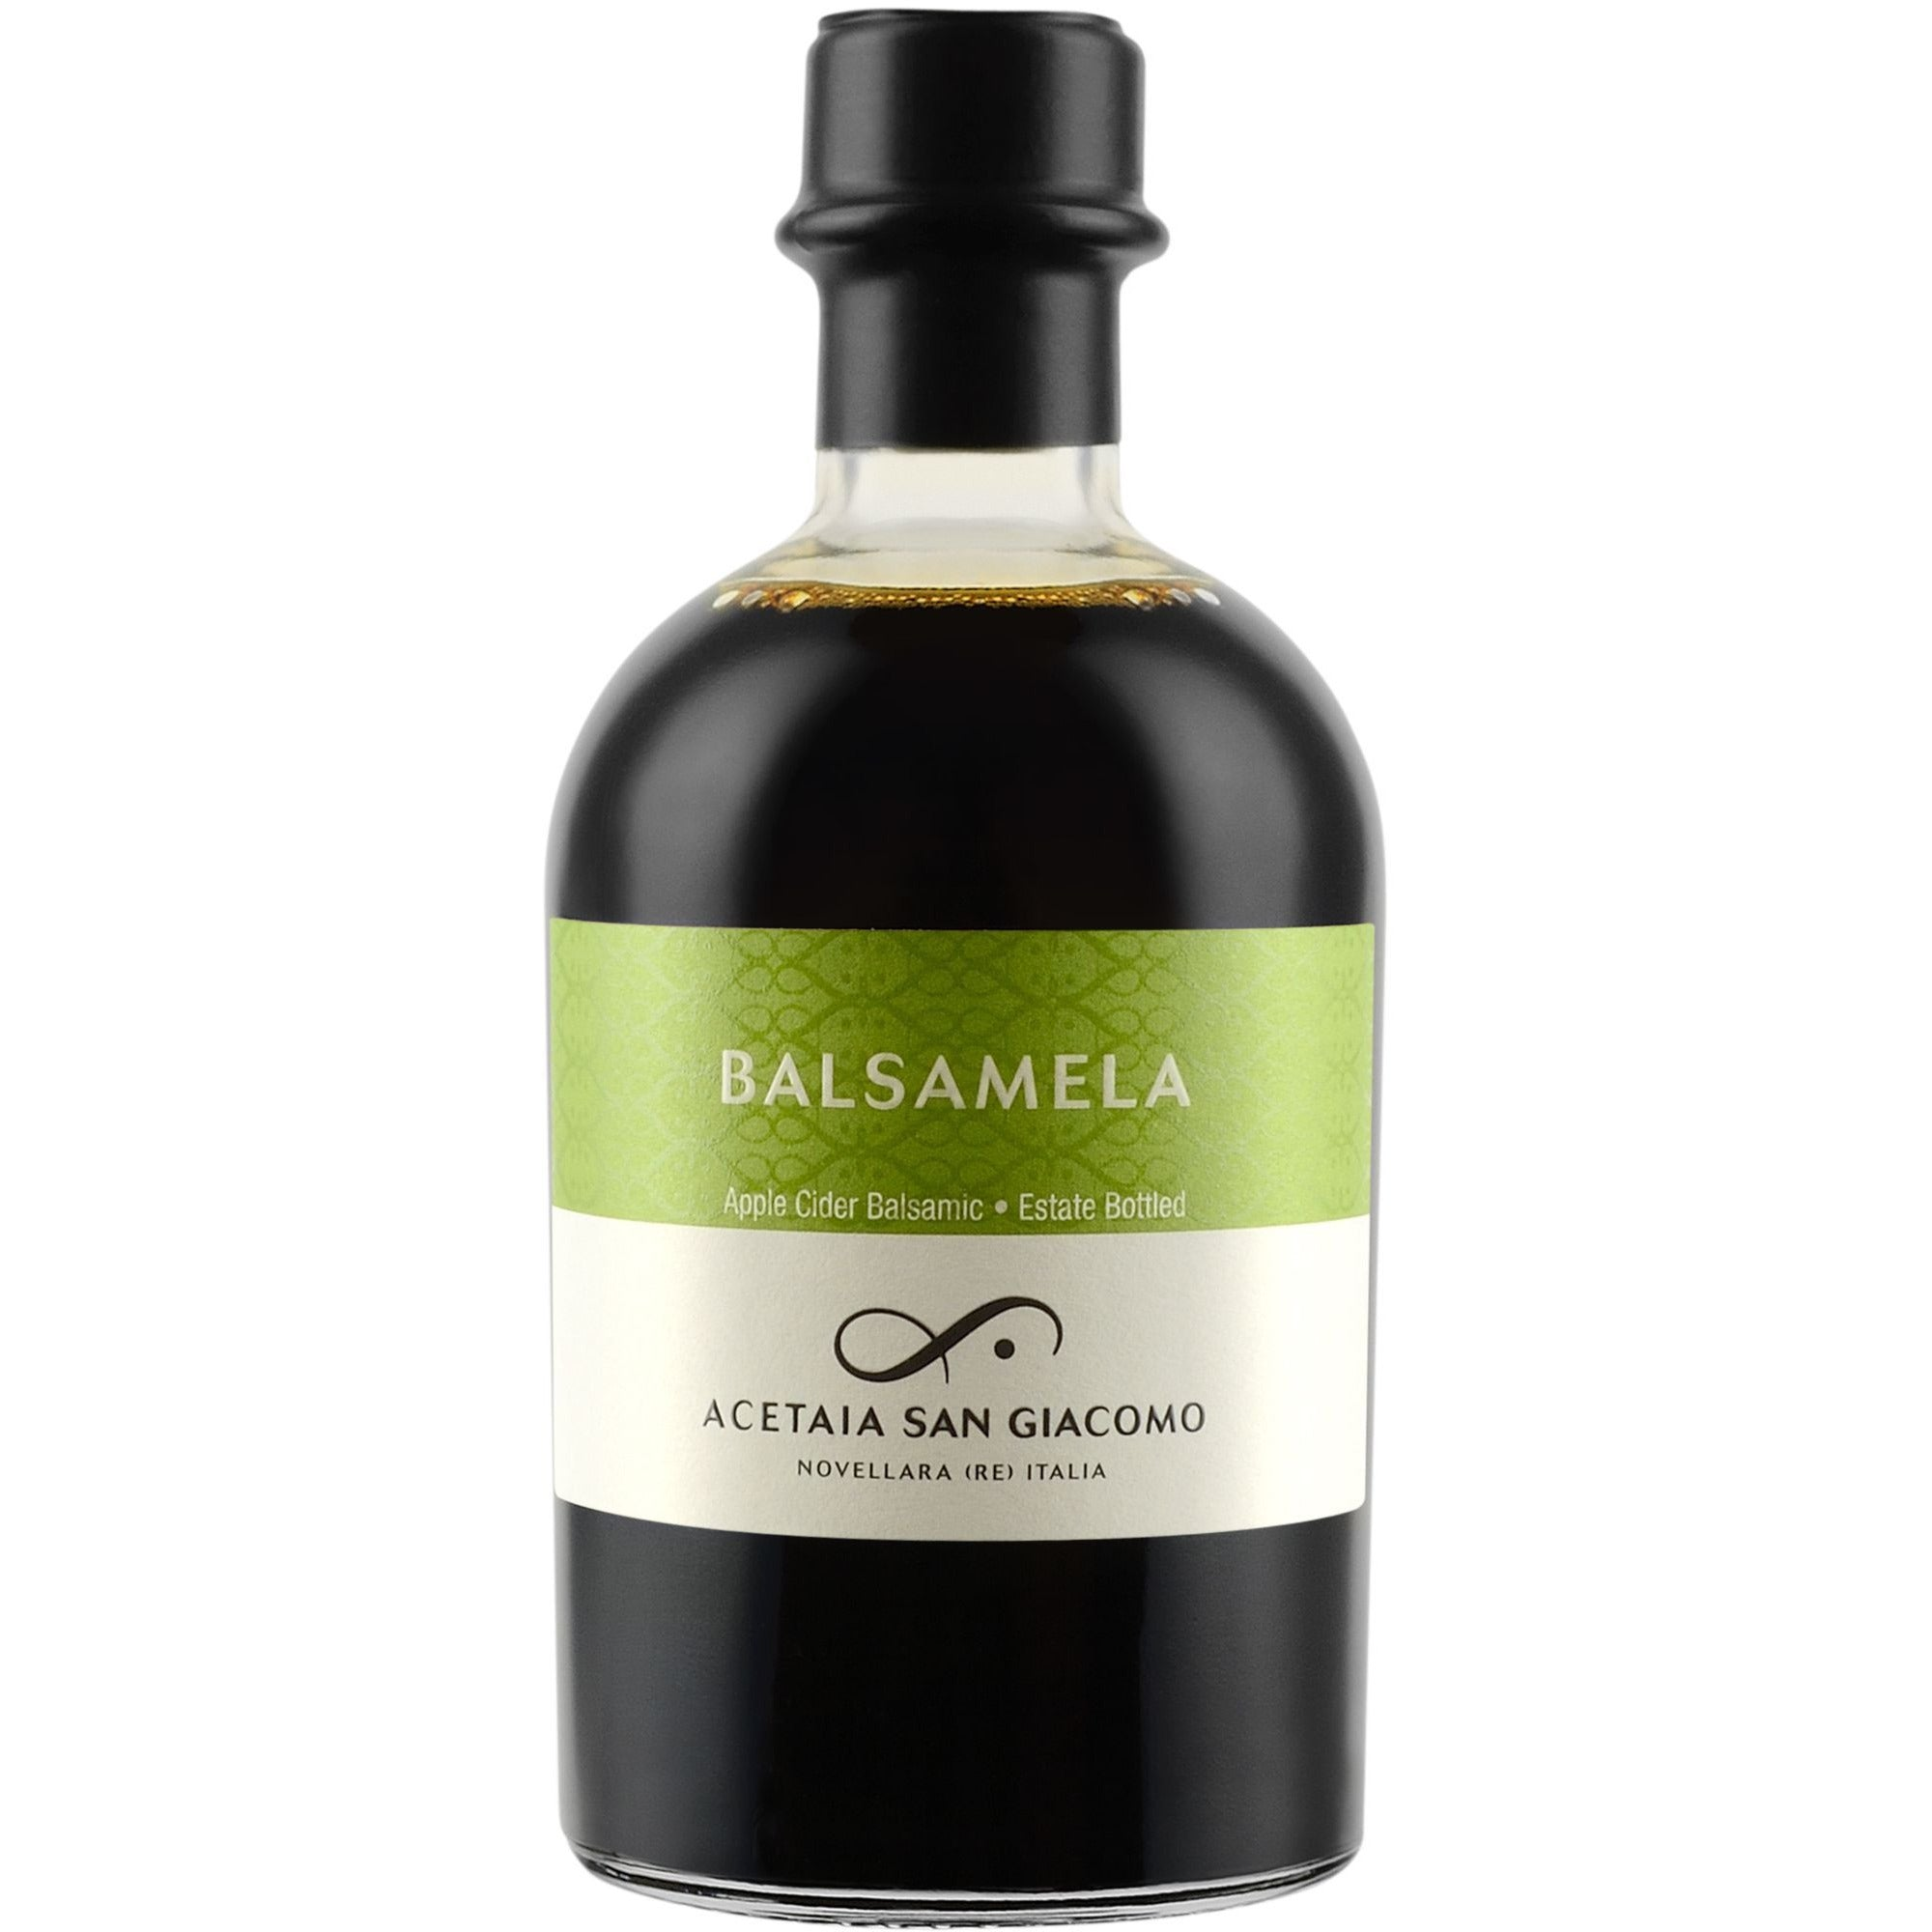 Acetaia San Giacomo Balsamela Apple Balsamic 100mL